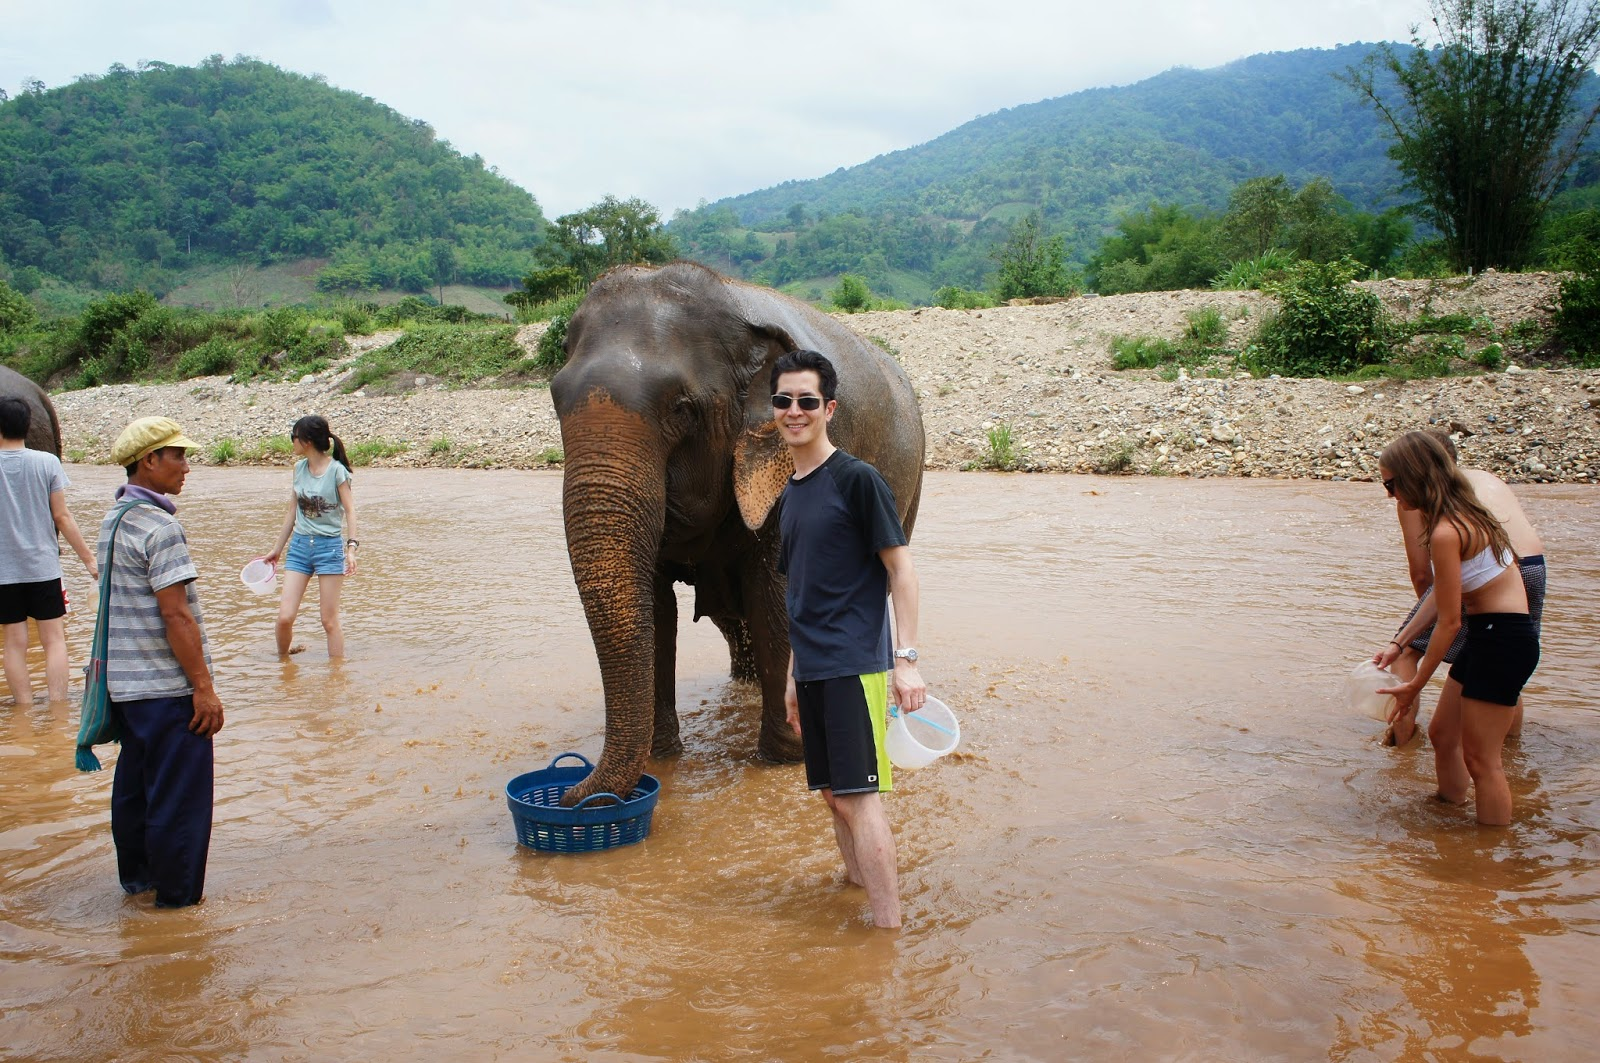 Chiang Mai - You can get up close to the elephants